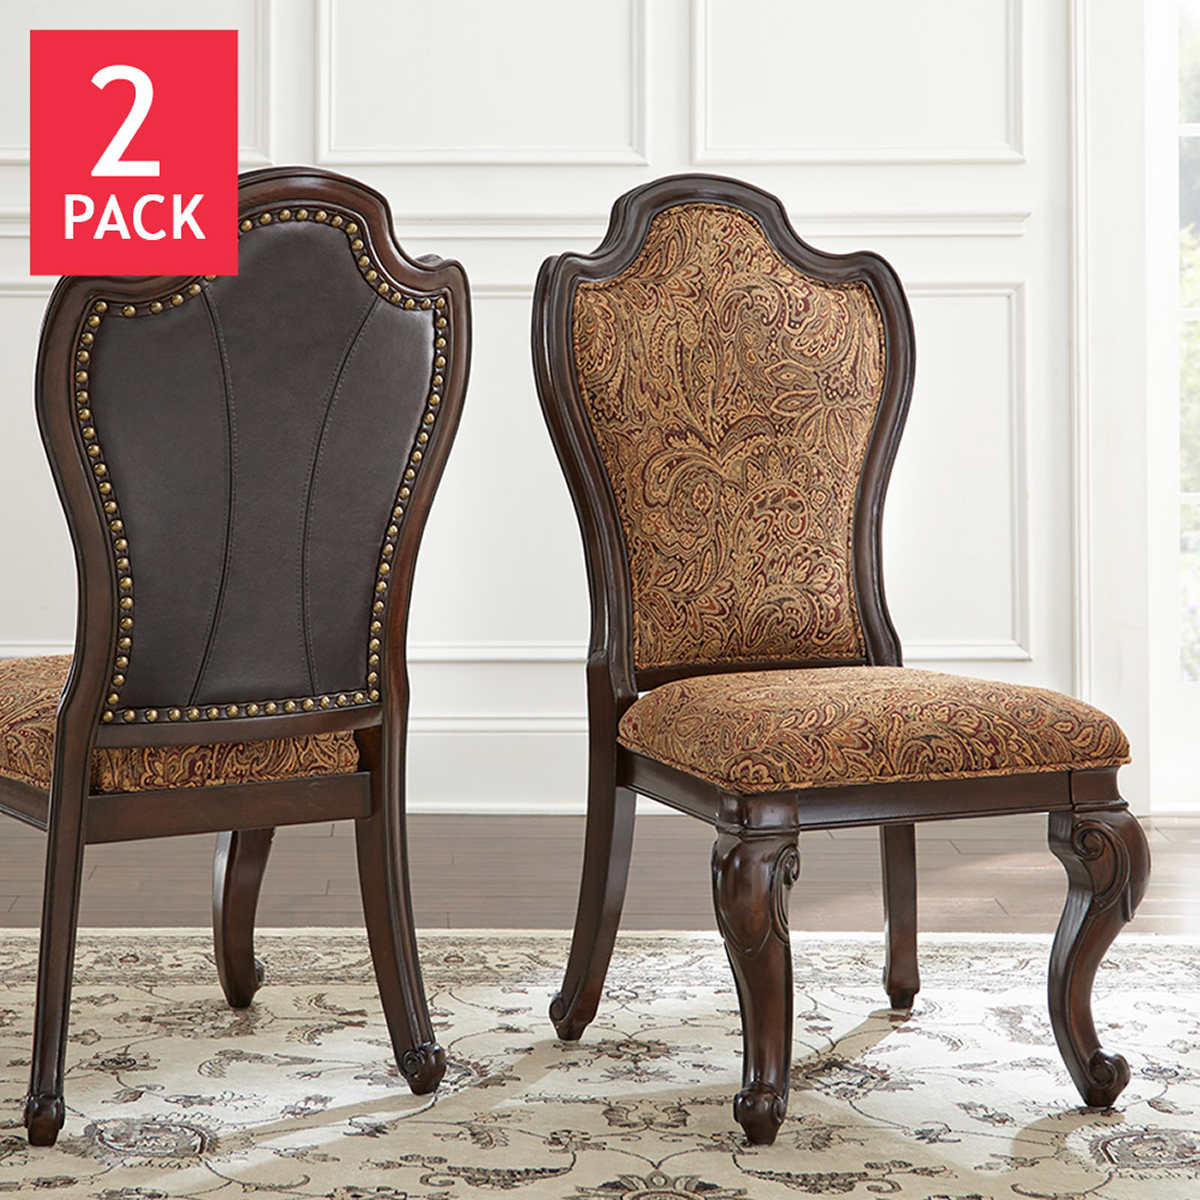 Arriana Side Chair 2 Pack